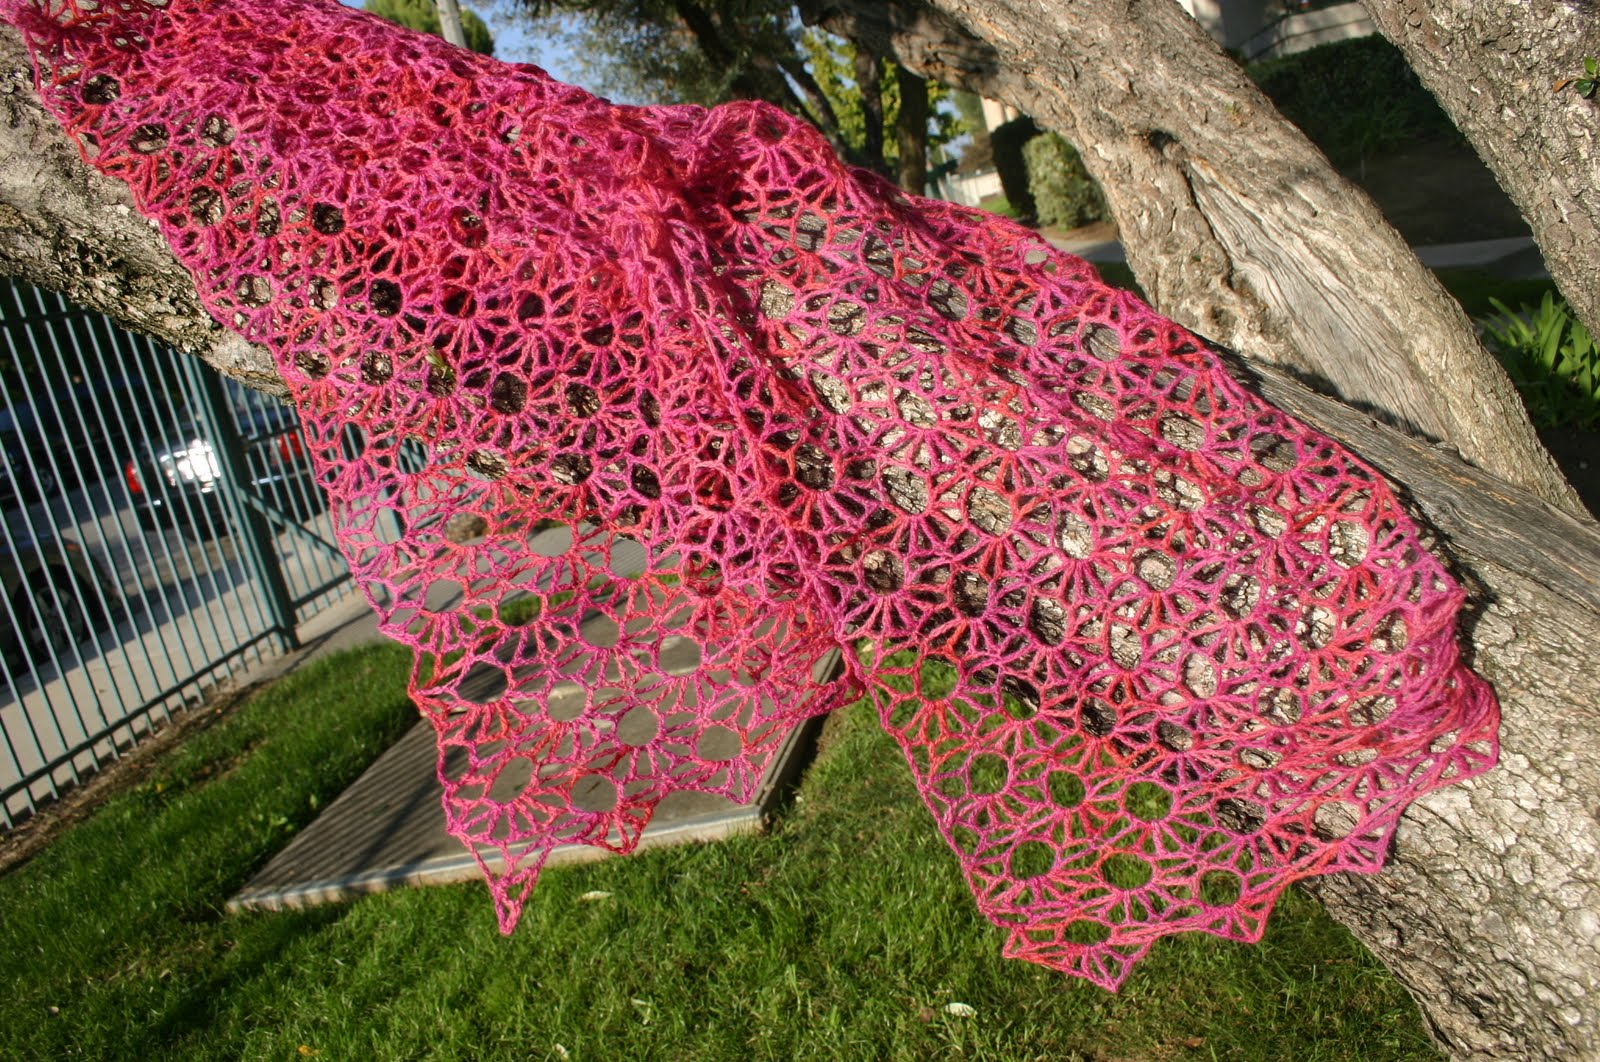 Knitting Summer Scarves : Jessica snell s versailles scarf crocheted